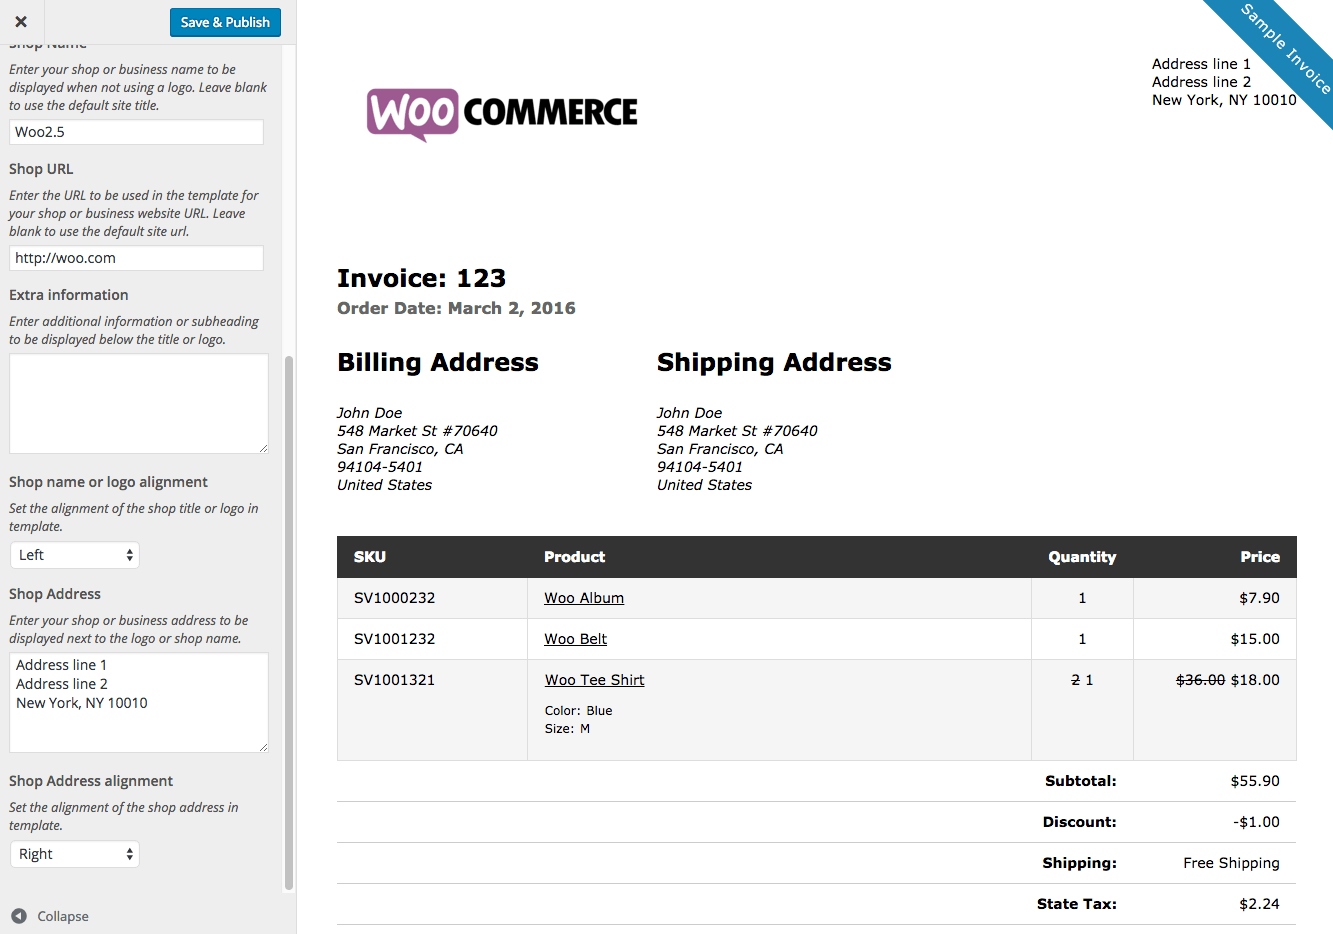 Aaaaeroincus  Winsome Woocommerce Print Invoices Amp Packing Lists  Woocommerce Docs With Hot Woocommerce Print Invoices  Packing Lists Customizer With Lovely How To Send An Email With A Read Receipt Also Download Receipt In Addition Bny Mellon Depositary Receipts And Budgeted Cash Receipts Formula As Well As Rental Property Receipt Additionally Custom Receipts Books From Docswoocommercecom With Aaaaeroincus  Hot Woocommerce Print Invoices Amp Packing Lists  Woocommerce Docs With Lovely Woocommerce Print Invoices  Packing Lists Customizer And Winsome How To Send An Email With A Read Receipt Also Download Receipt In Addition Bny Mellon Depositary Receipts From Docswoocommercecom